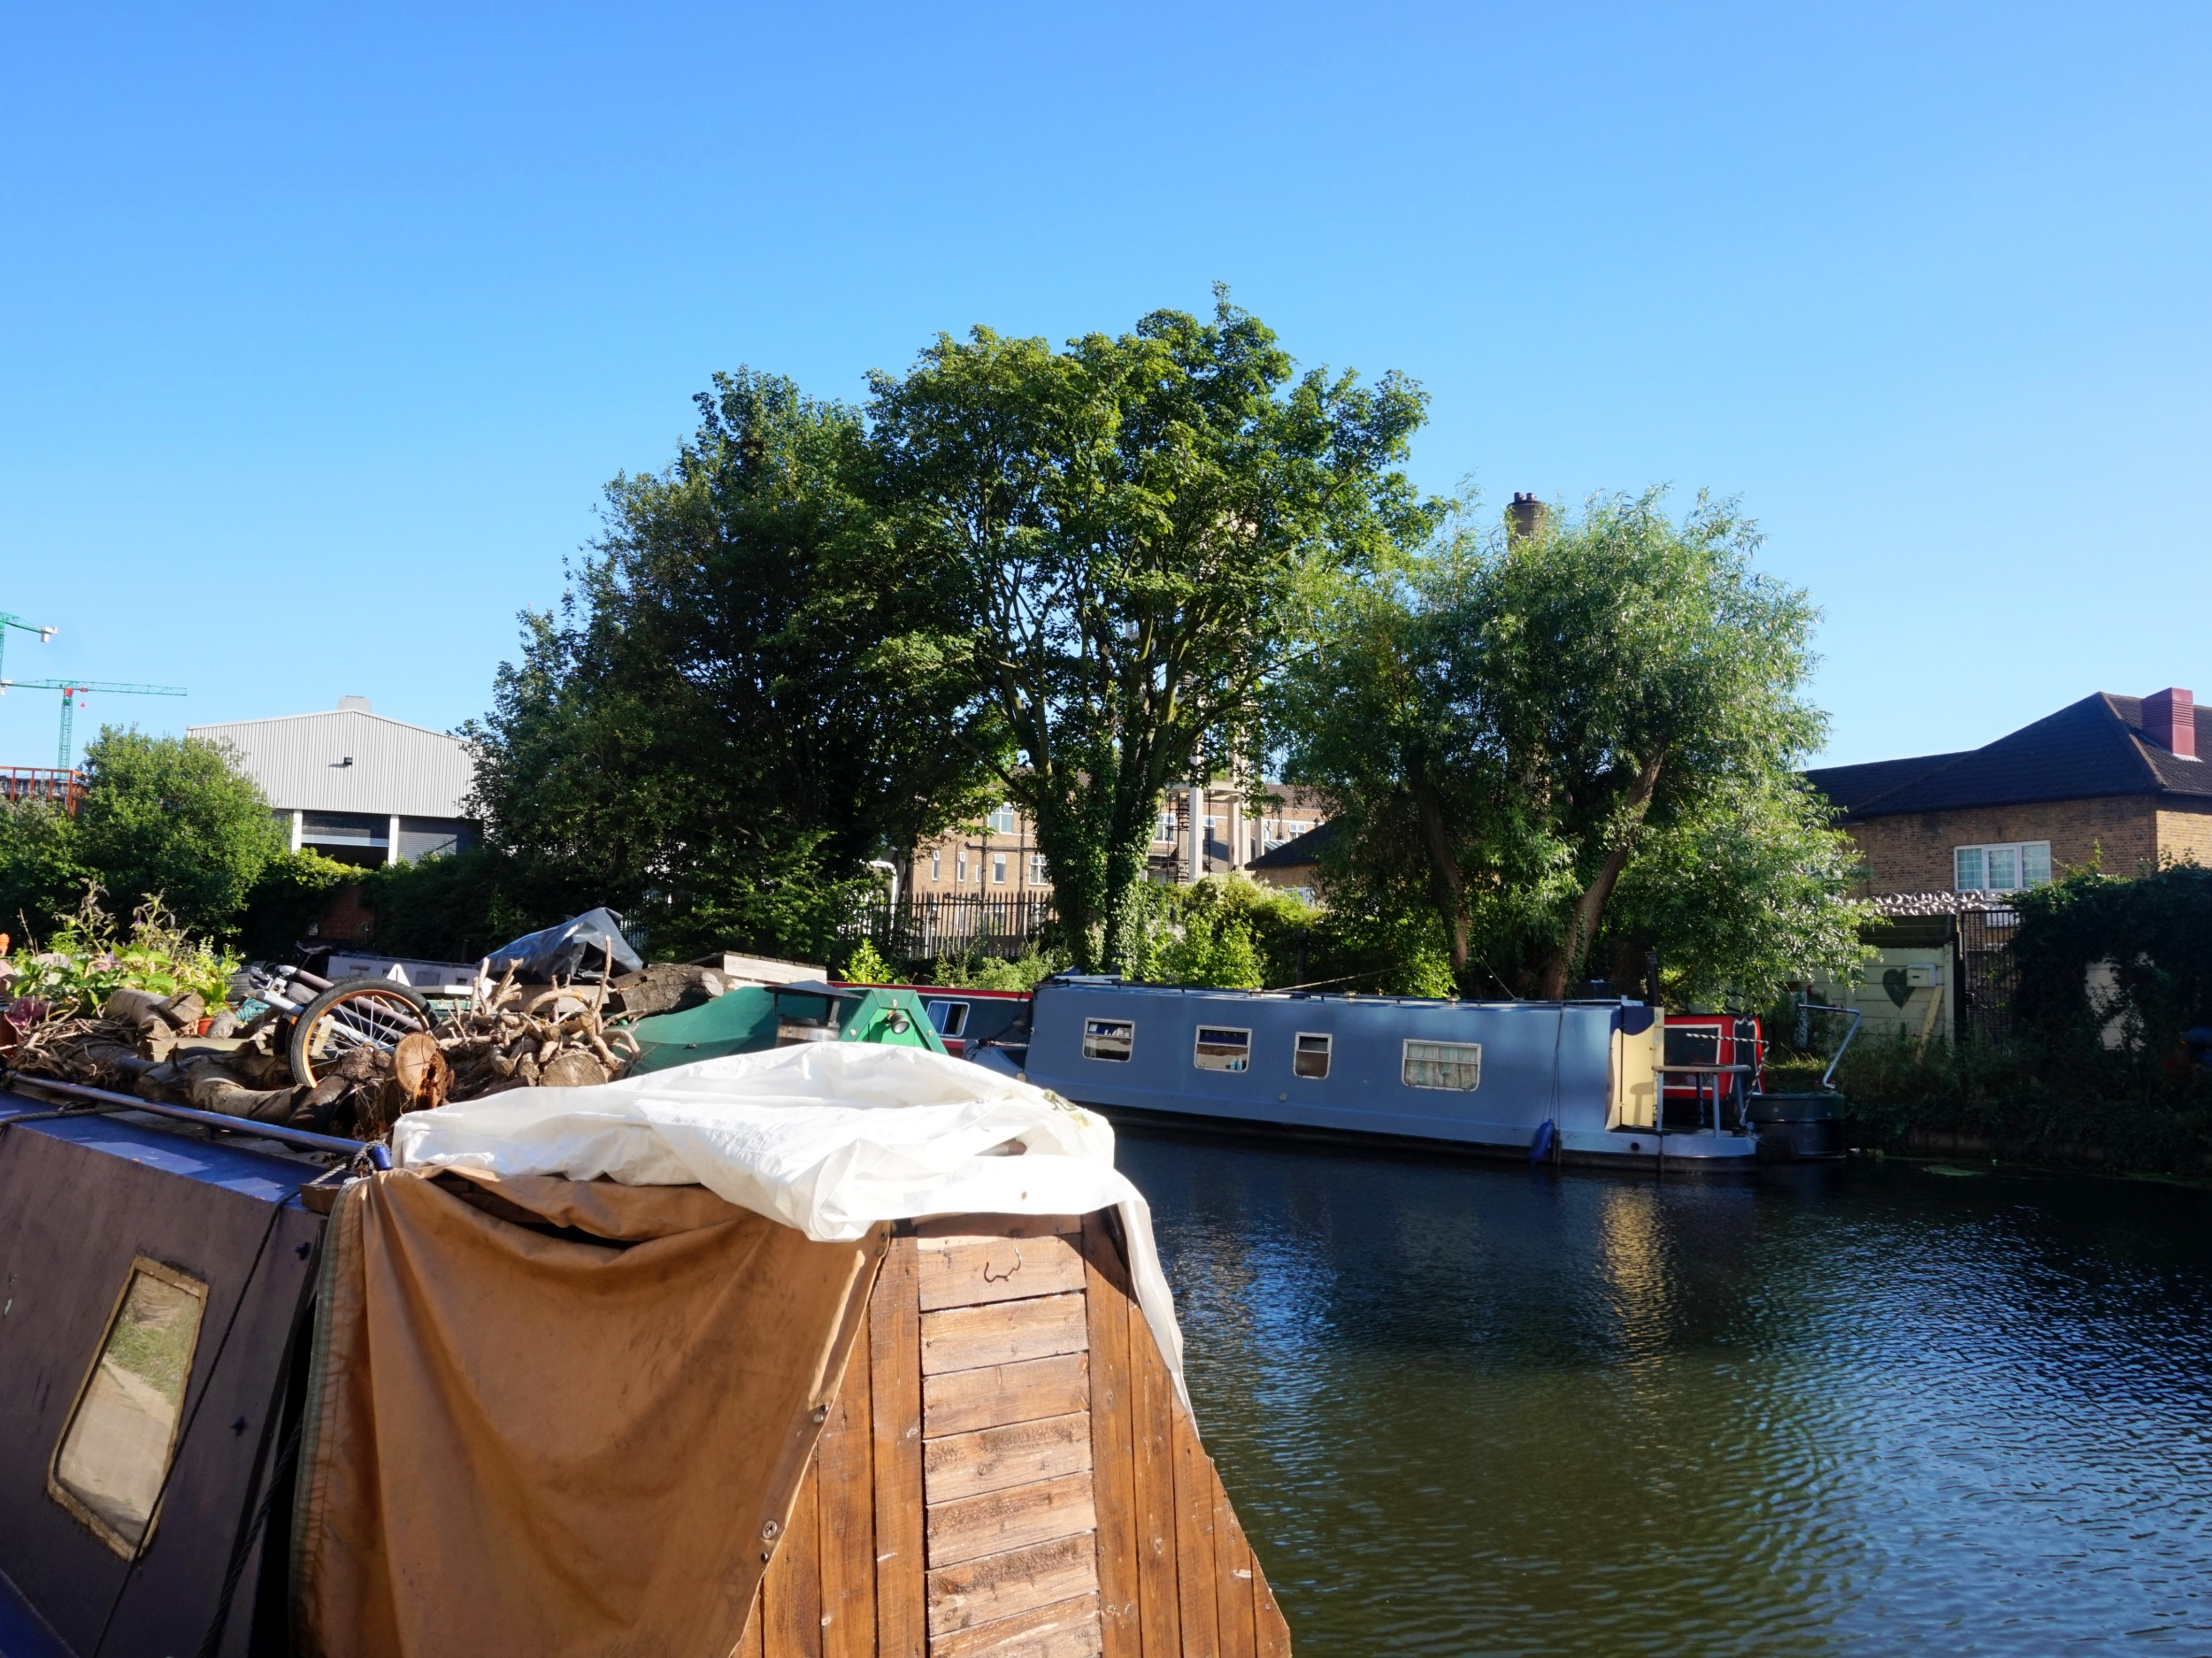 Regents-Canal-66